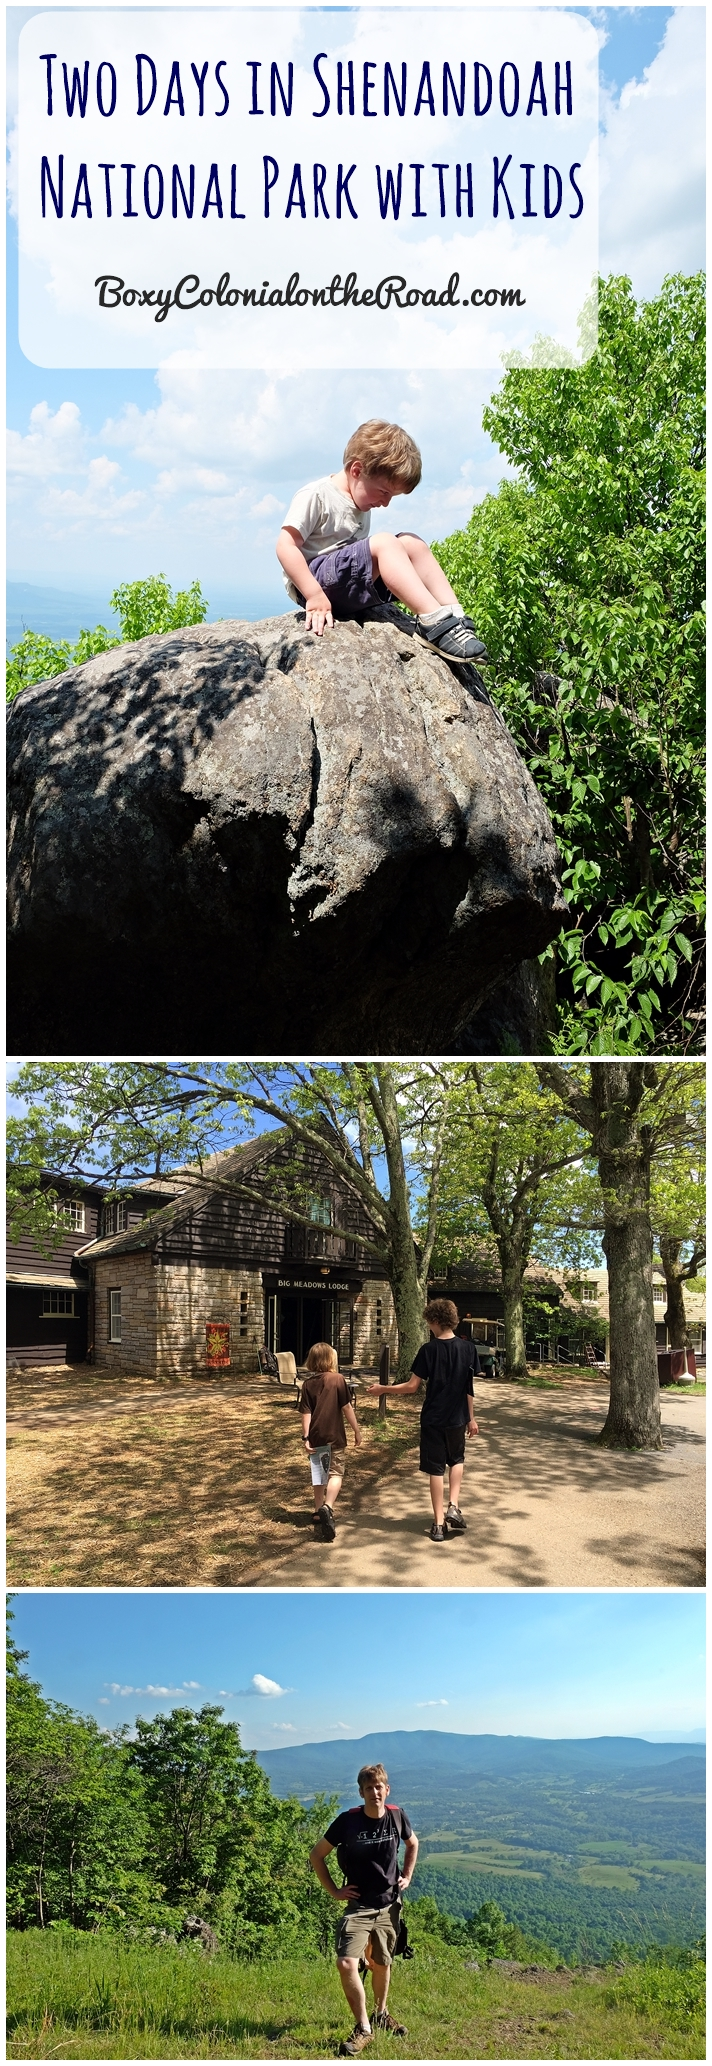 Two days in Shenandoah National Park with kids: junior ranger badges, visitors centers, hiking the Story of the Forest and Snead Farm trails